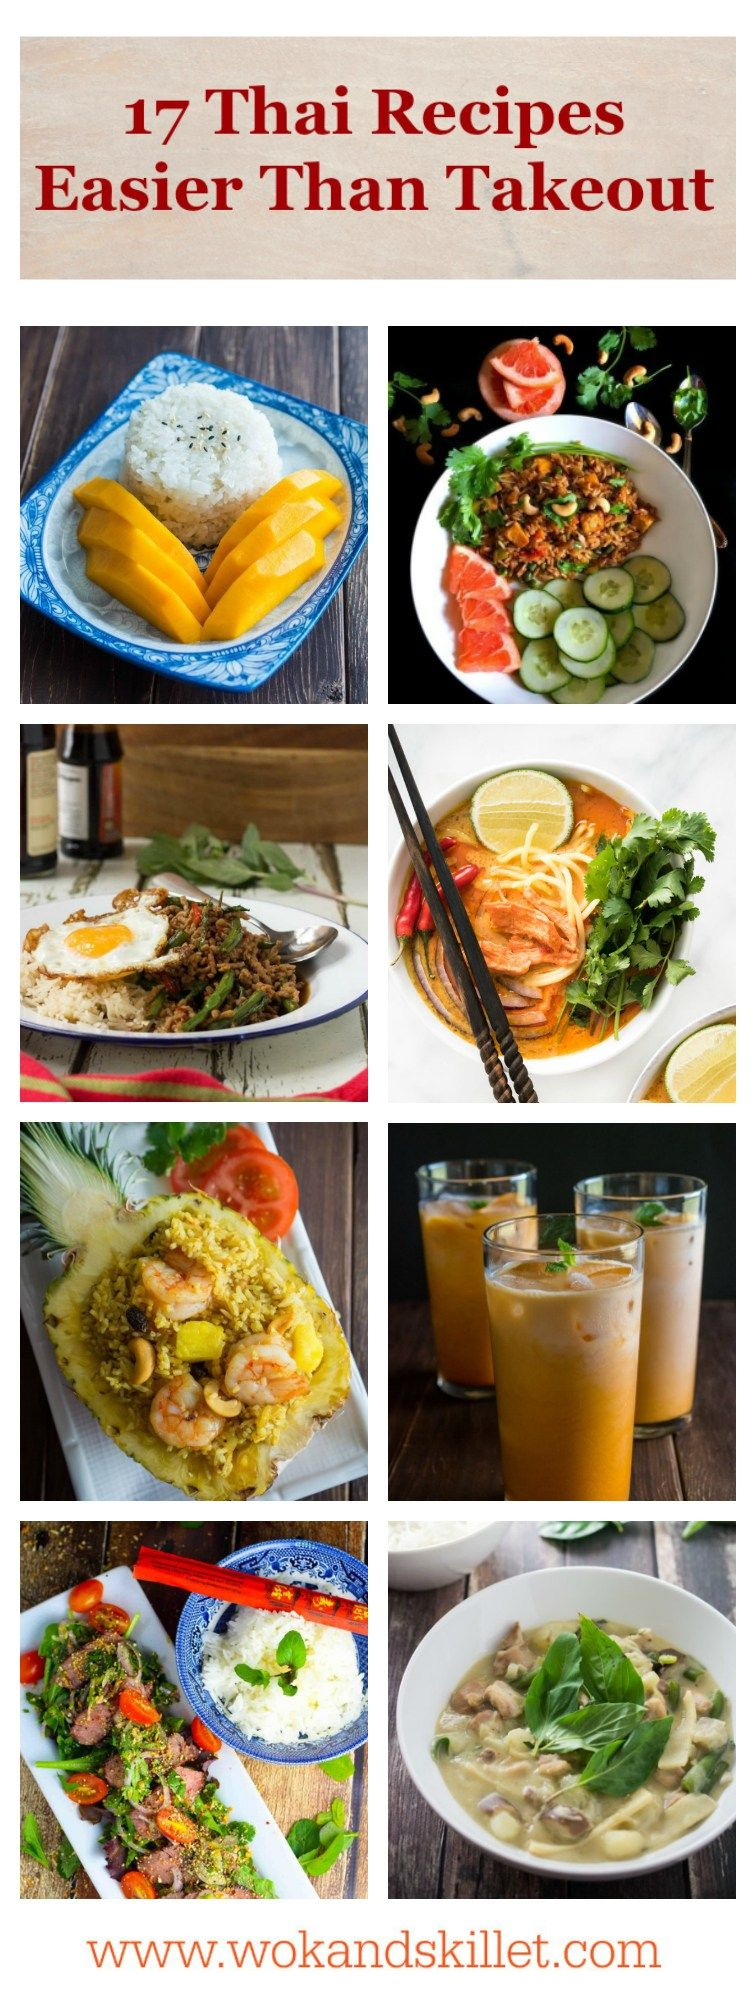 17 Easy Thai Recipes That Will Make You Re-think Takeout